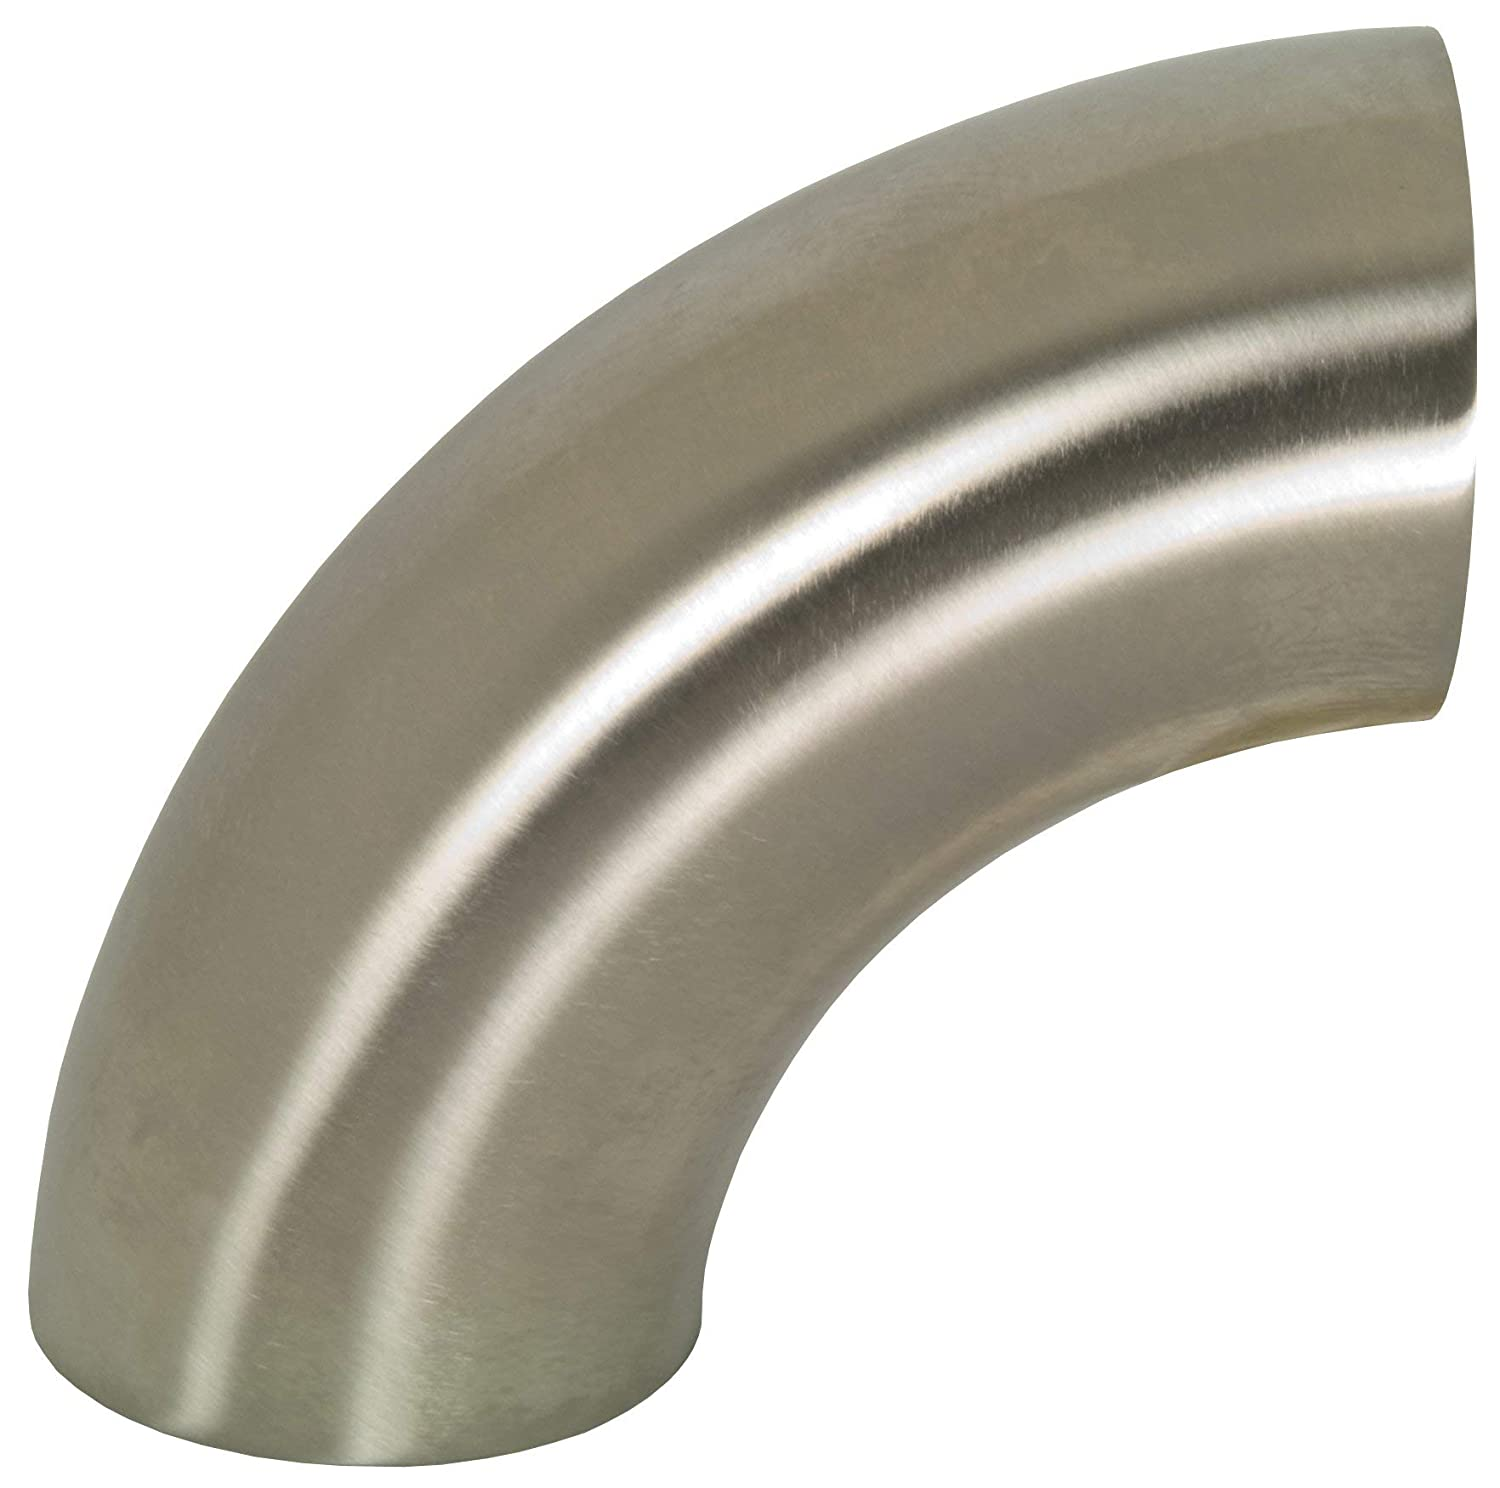 90 Degree Polished Weld Short Elbow 2-1//2 Tube OD Dixon B2WCL-G250P Stainless Steel 304 Sanitary Fitting